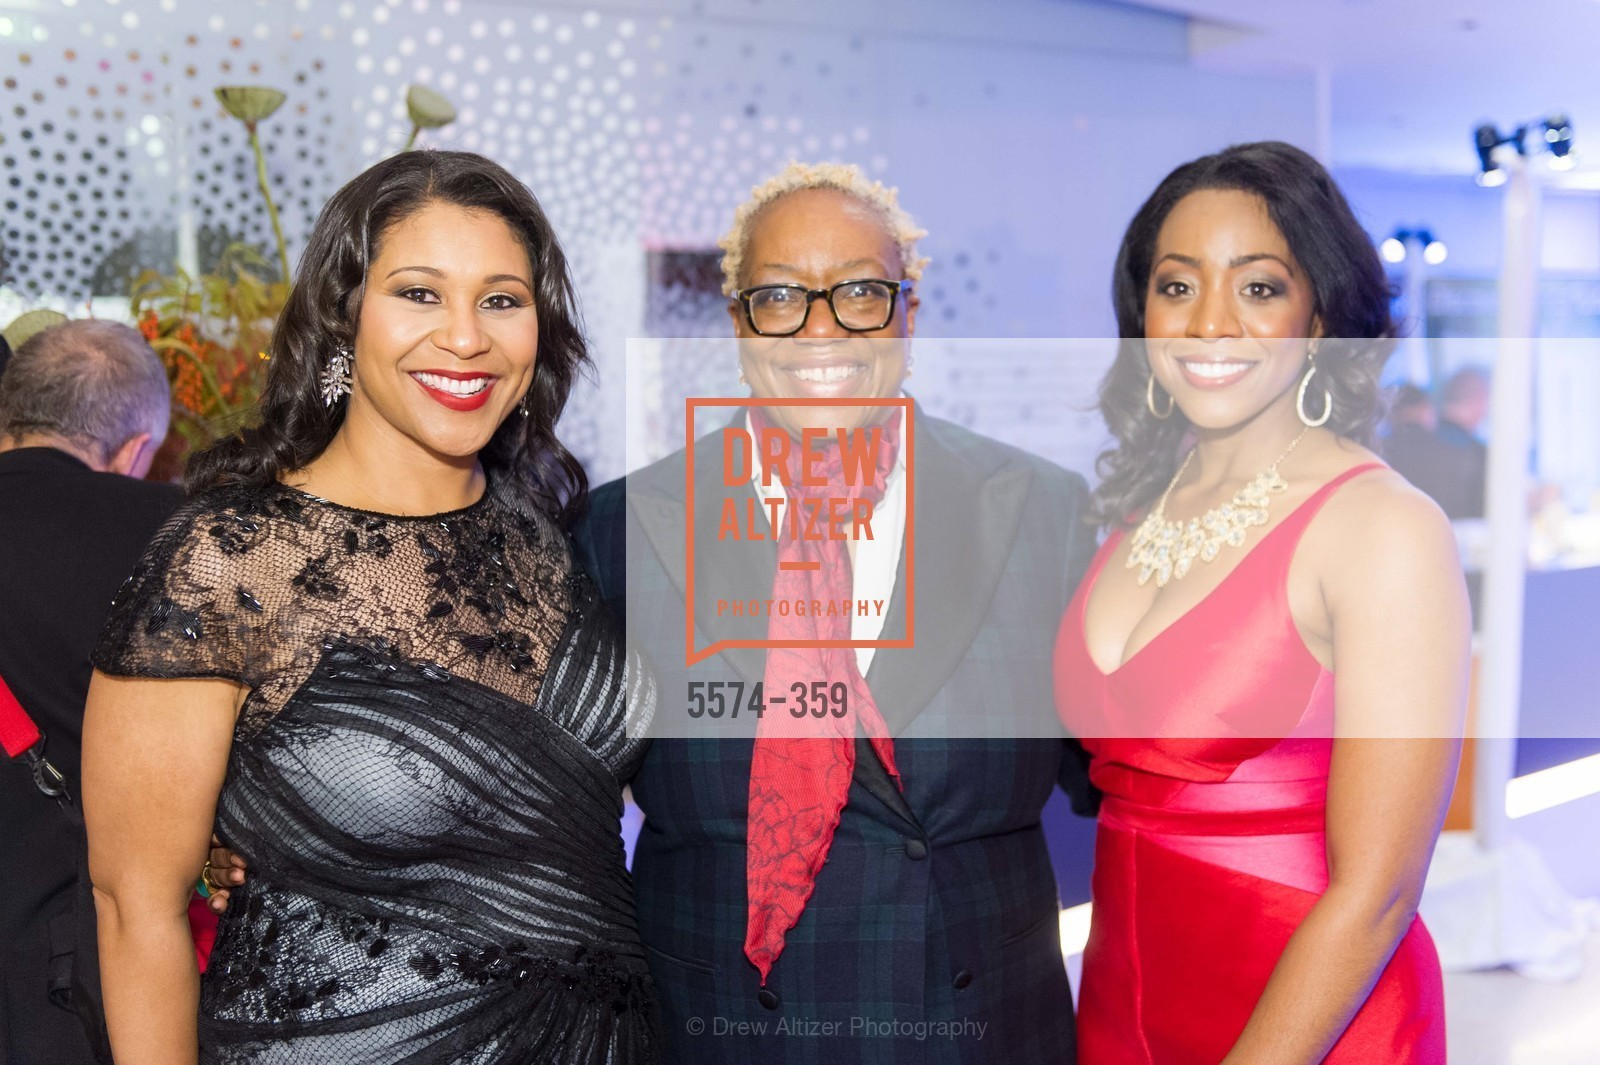 London Breed, Linda Harrison, Malia Cohen, 2015 MoAD Gala: Finding the I in Diaspora, MoAD Museum & The St. Regis, October 10th, 2015,Drew Altizer, Drew Altizer Photography, full-service agency, private events, San Francisco photographer, photographer california